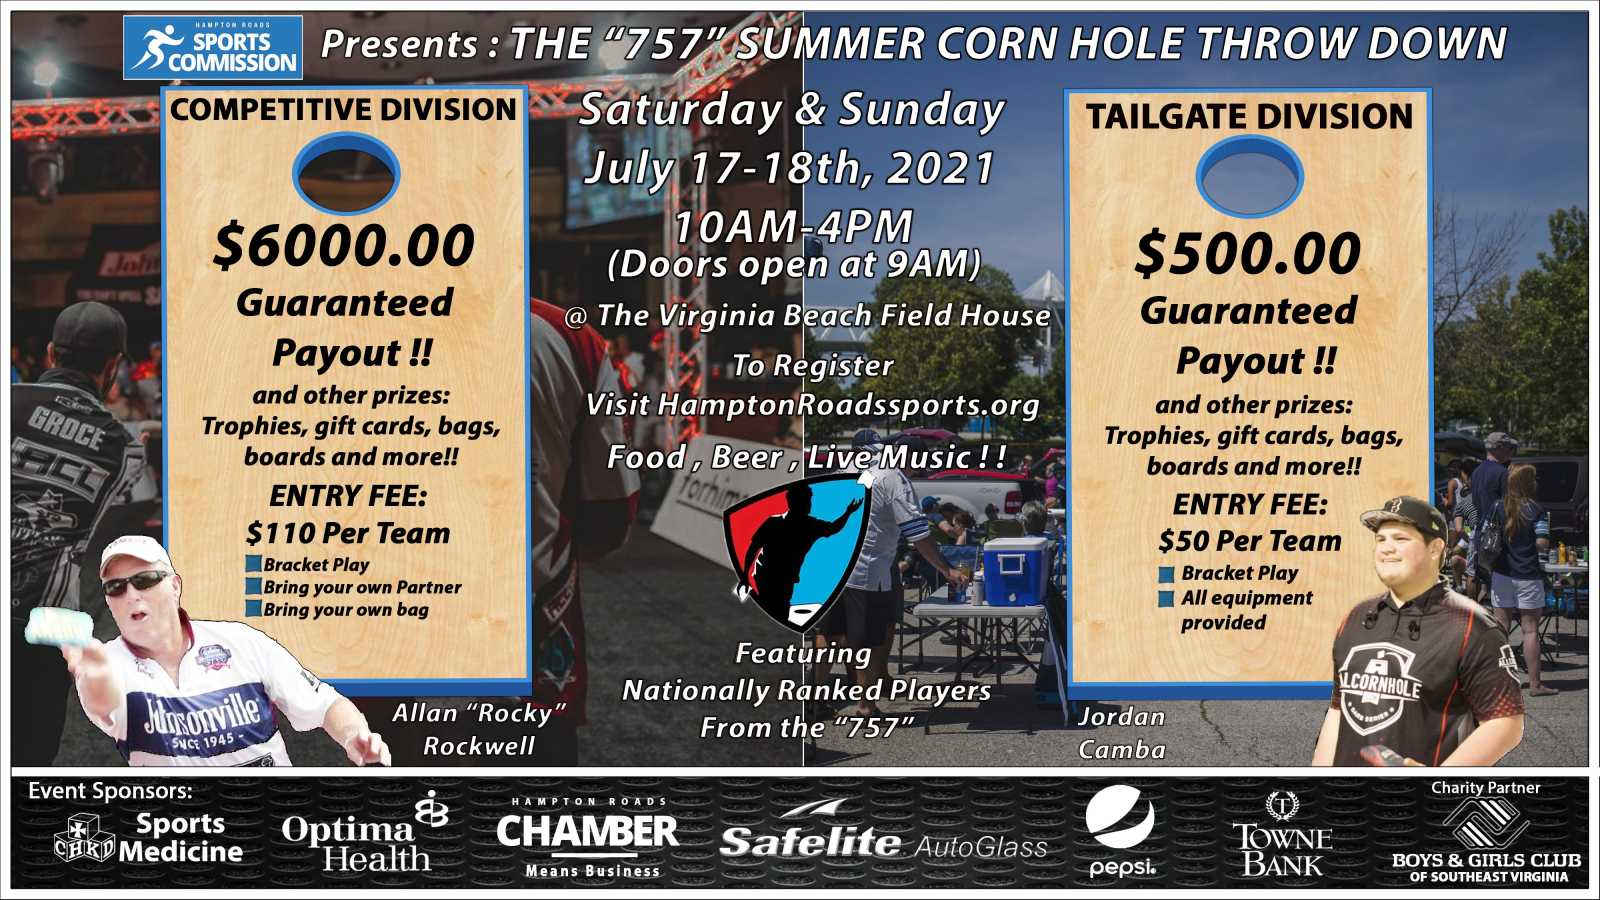 757 Summer Corn Hole Throw Down Set for July 17-18